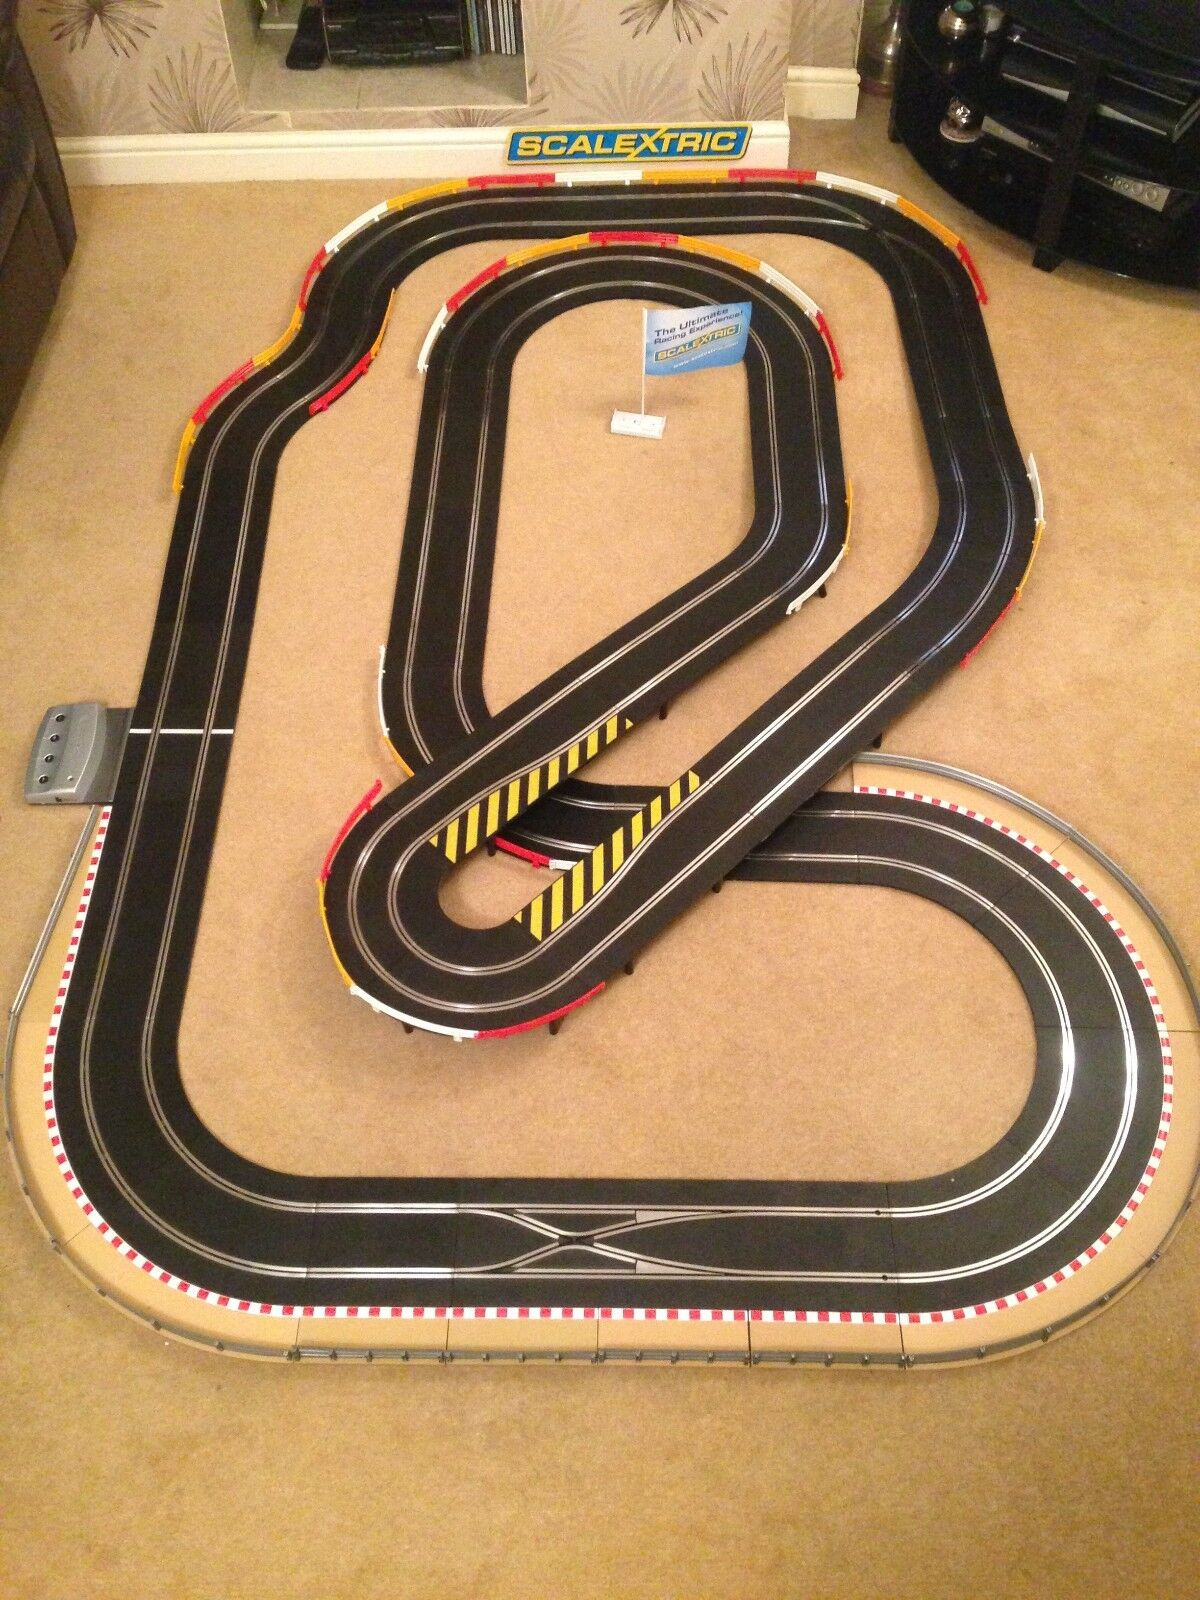 Scalextric Digital Large Layout with Flyover   Hairpin   Corner Xovers & 2 Cars